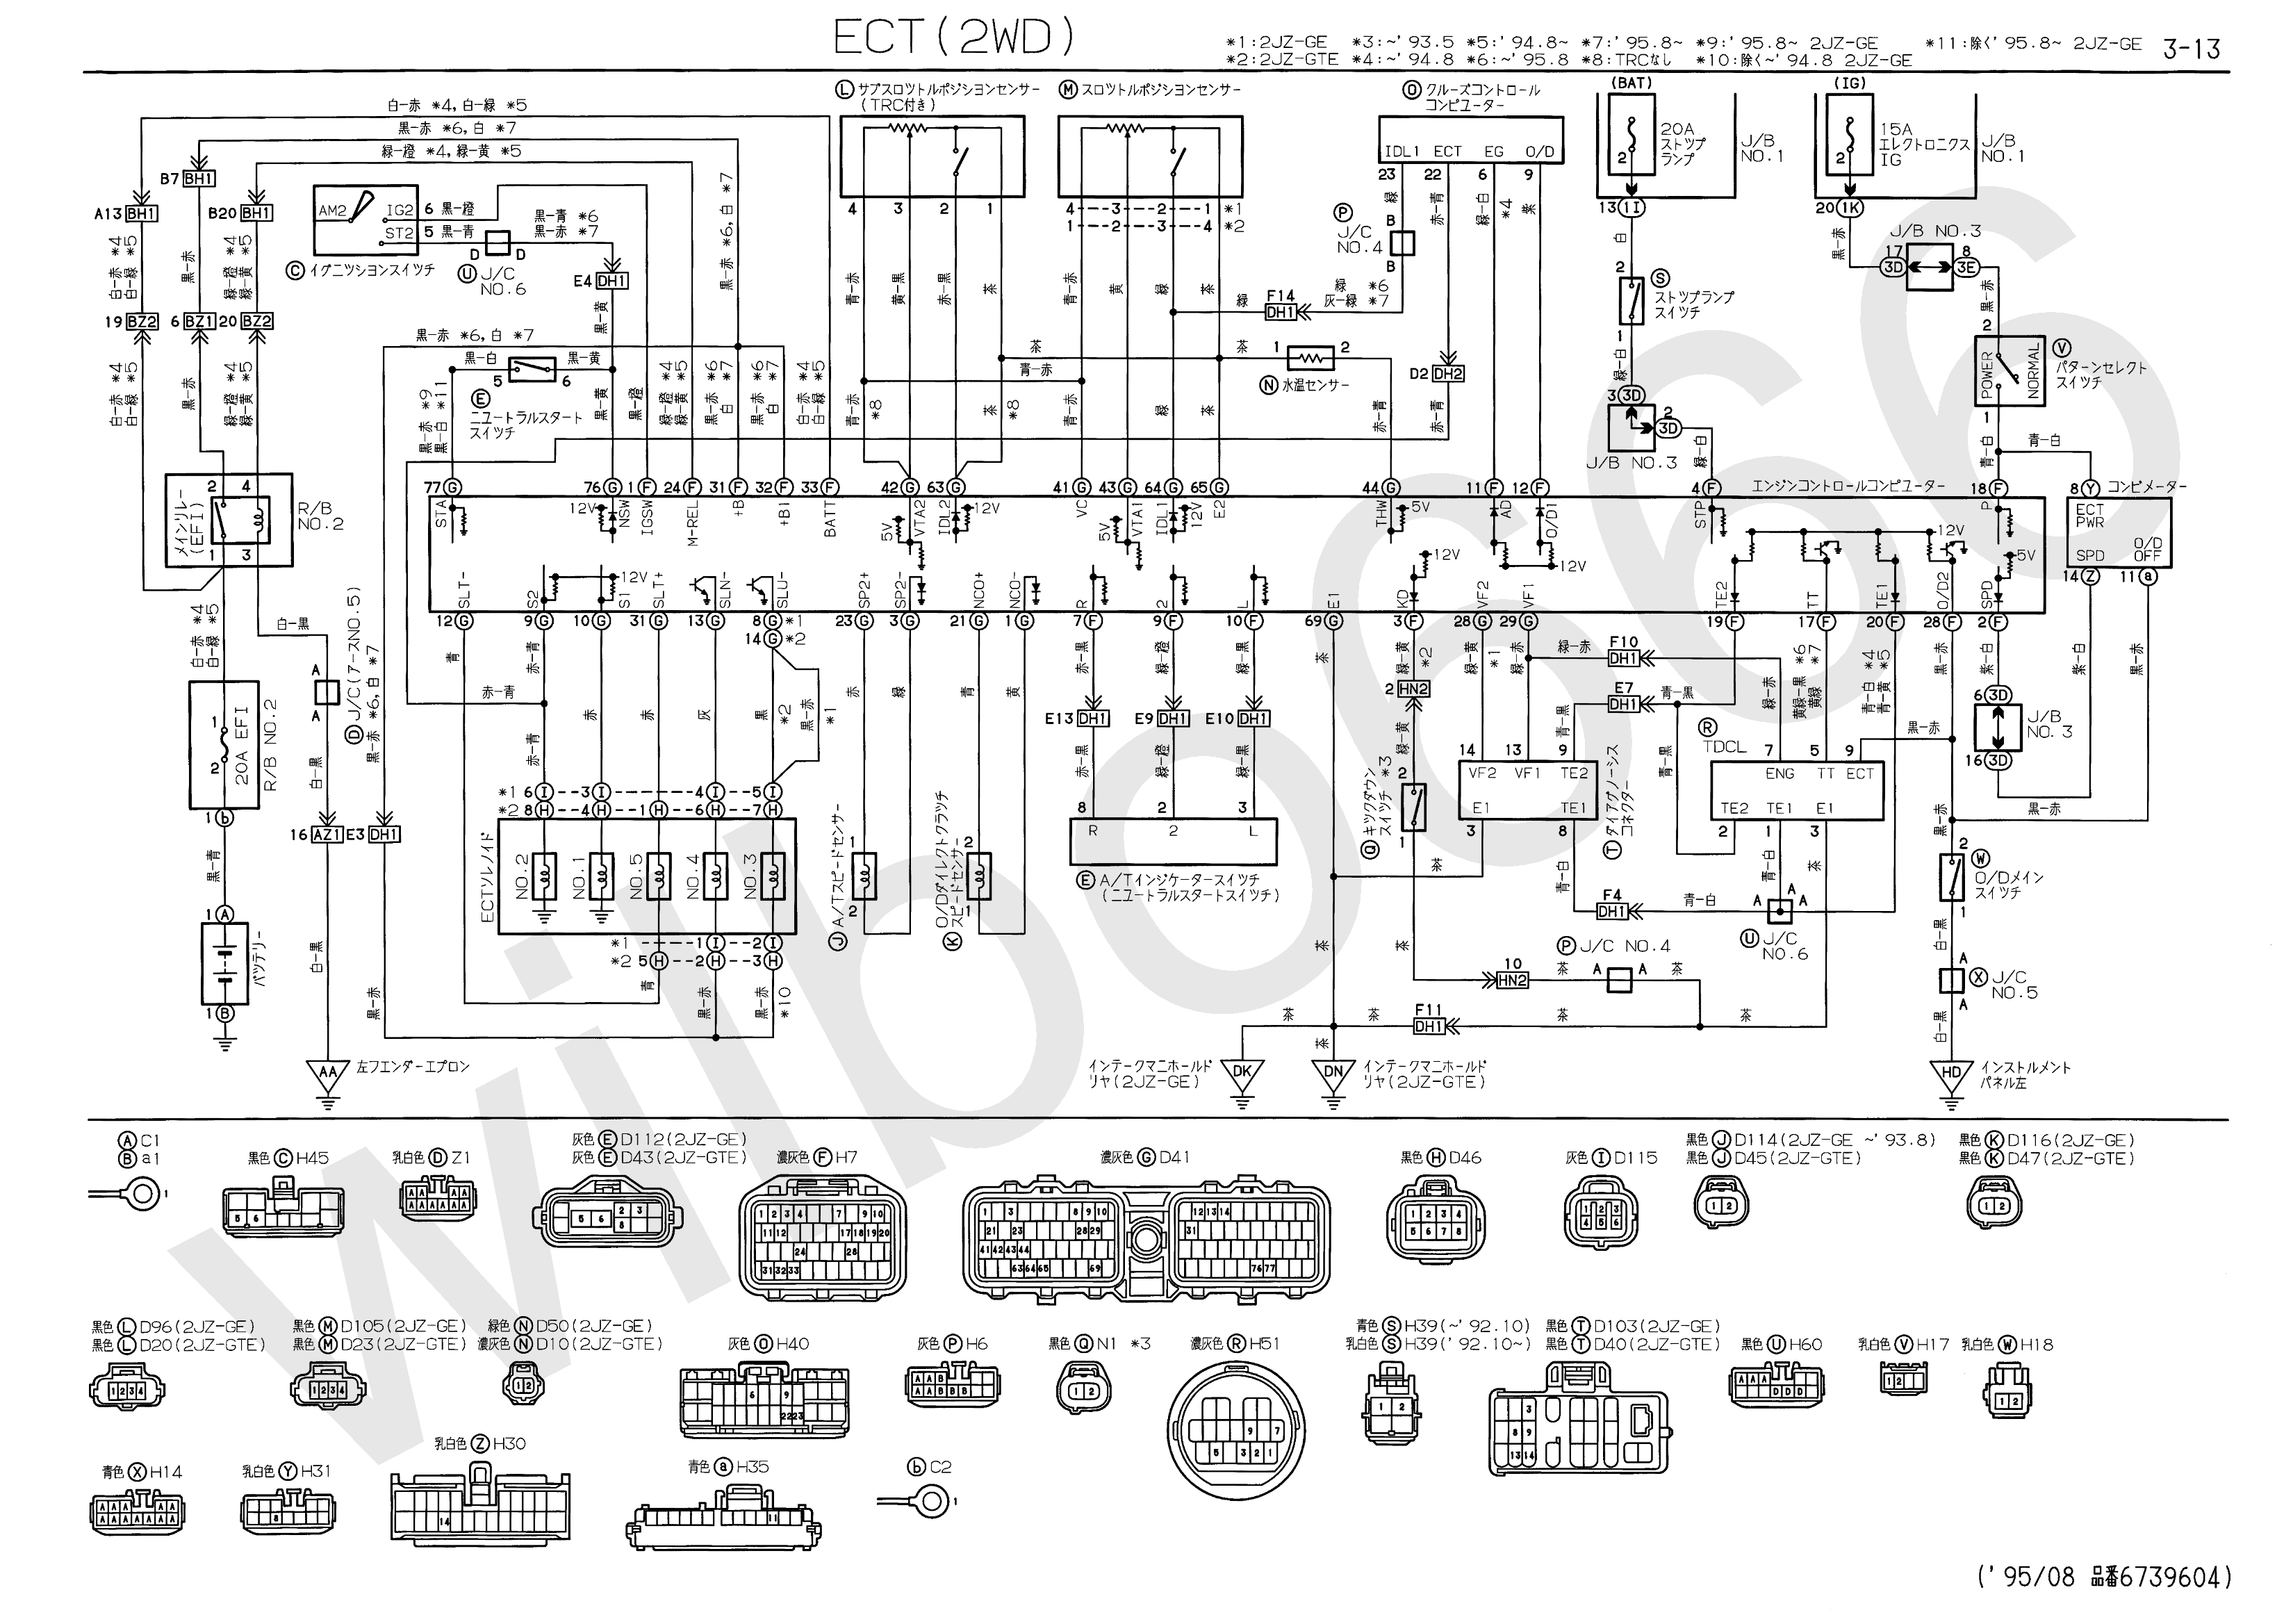 2007 Laredo Radio Wiring Diagram also Sony Cdx Gt110 Wiring Diagram in addition JQ8w 15133 besides DAEWOO Car Radio Wiring Connector besides 5eoxv Chrysler Sebring Jxi Convertible 1999 Chrysler Sebring Convertible. on toyota radio wiring harness